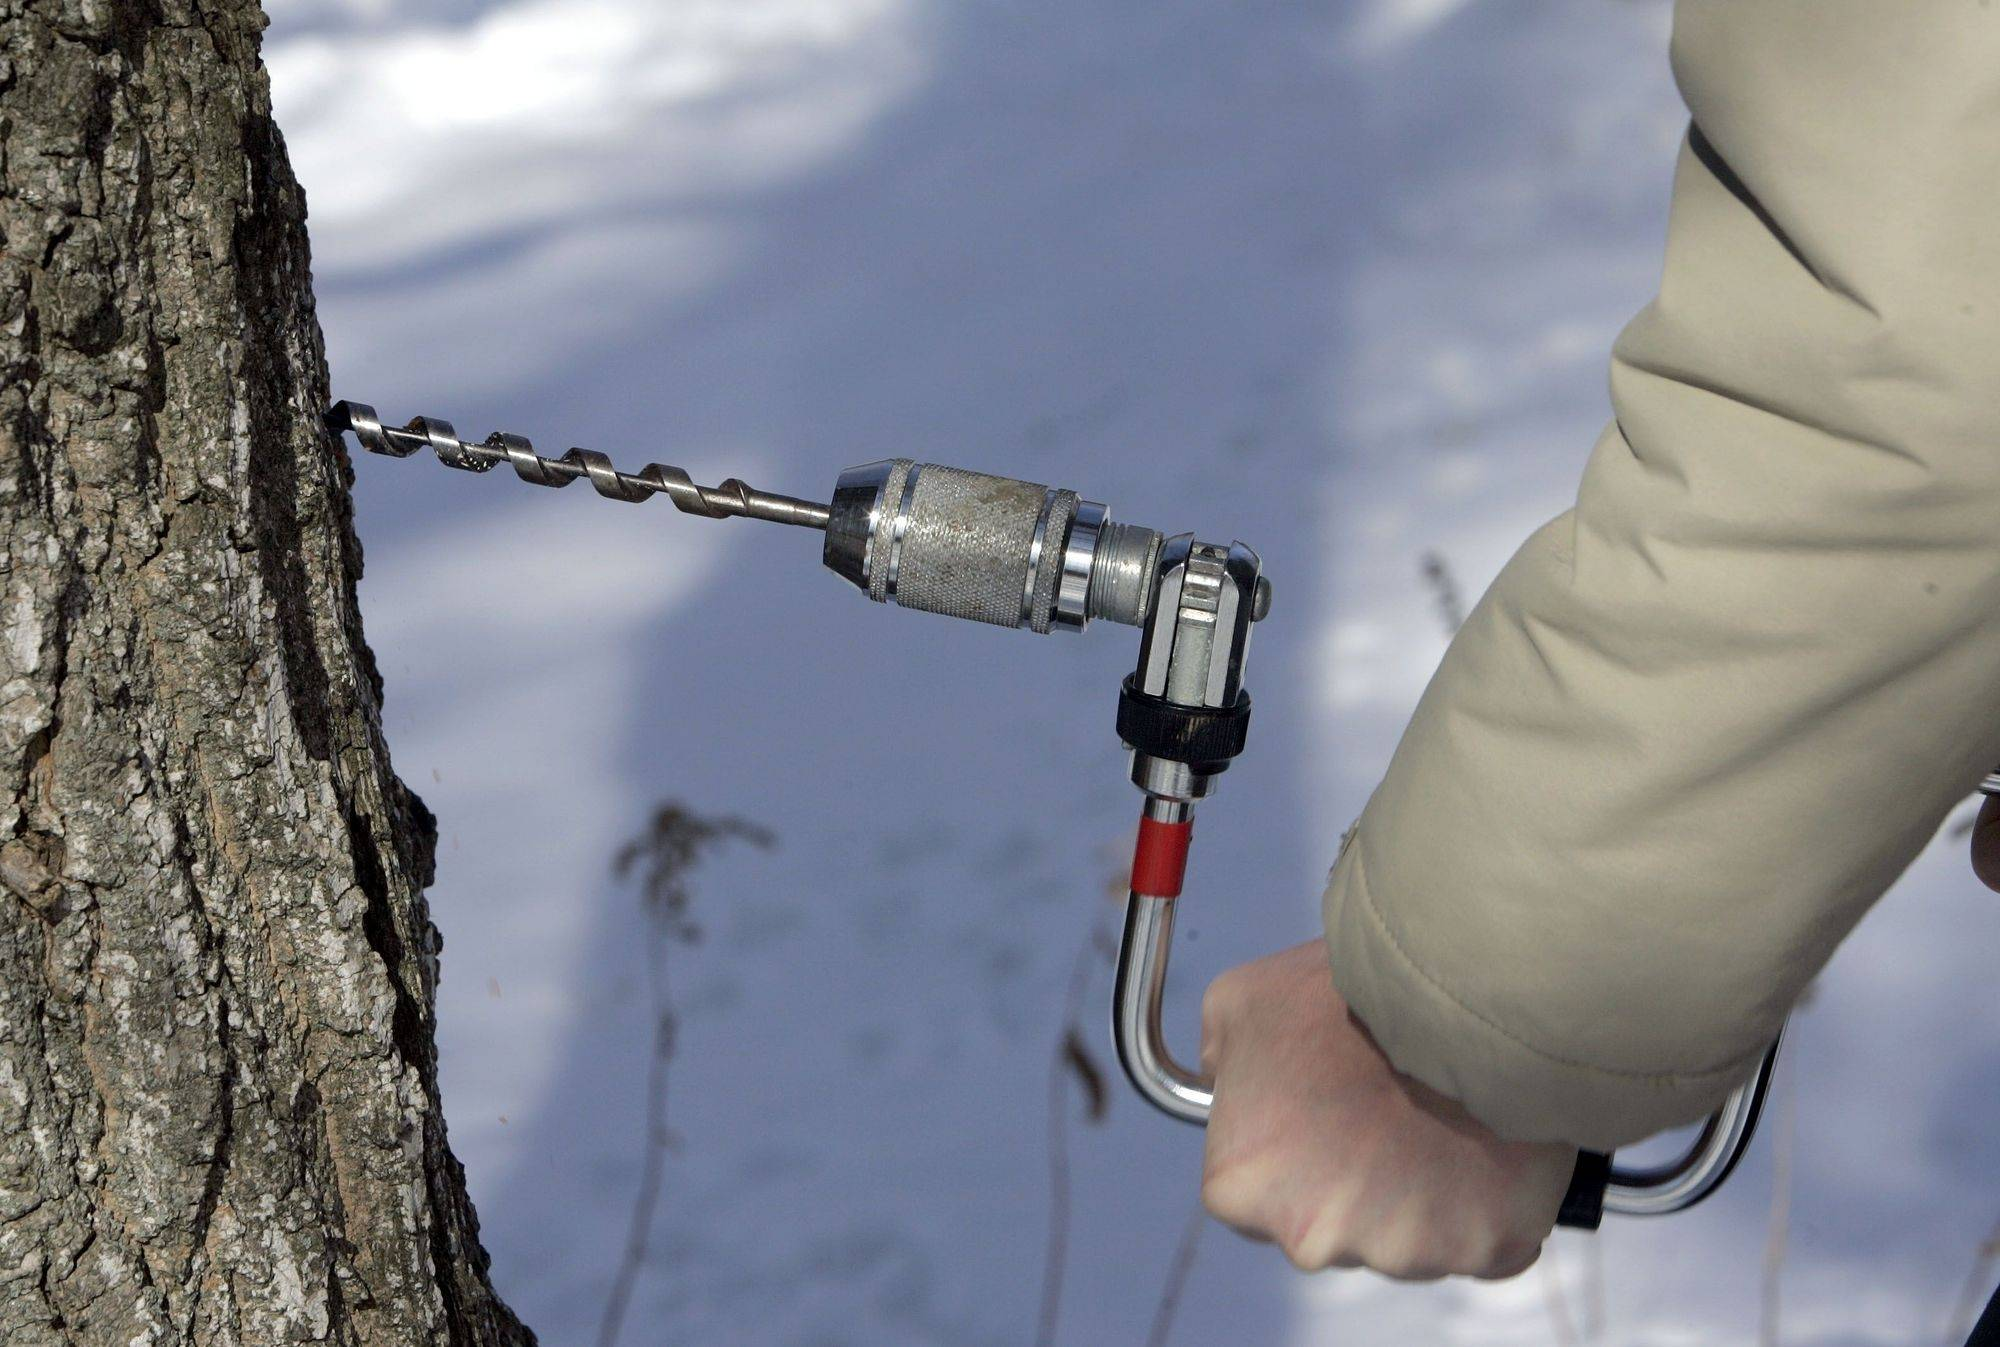 Tapping can be done without harming the tree if you pick a large, healthy tree and are careful about how deep you drill.